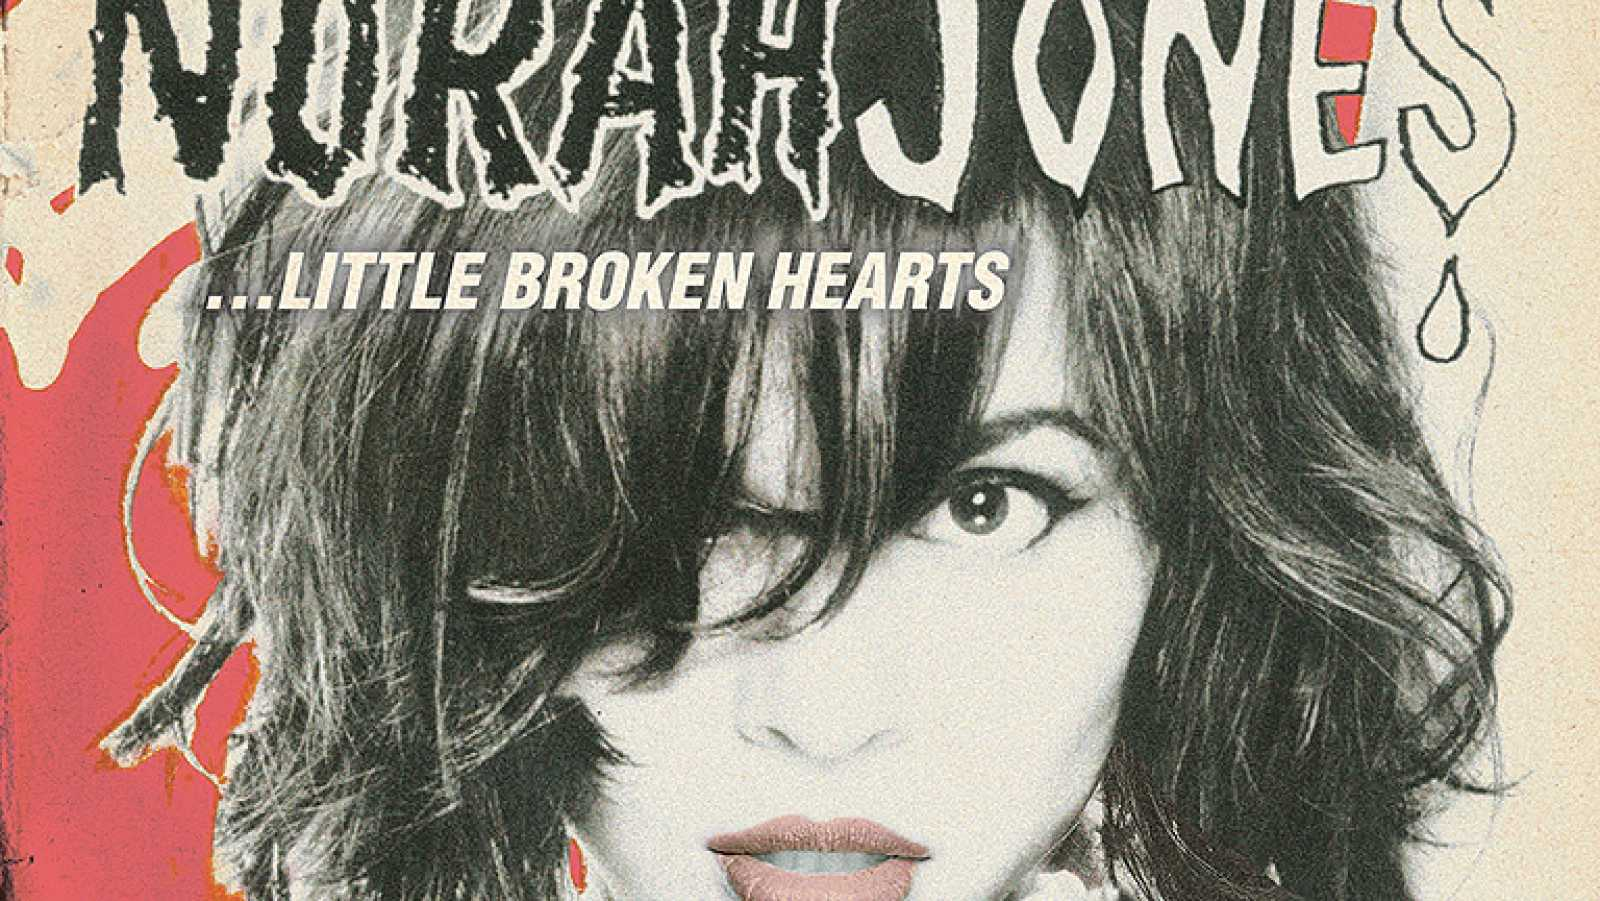 La cantante estadounidense Norah Jones presenta su nuevo trabajo, 'Little broken hearts'. El primer single ese este  'Happy pills'